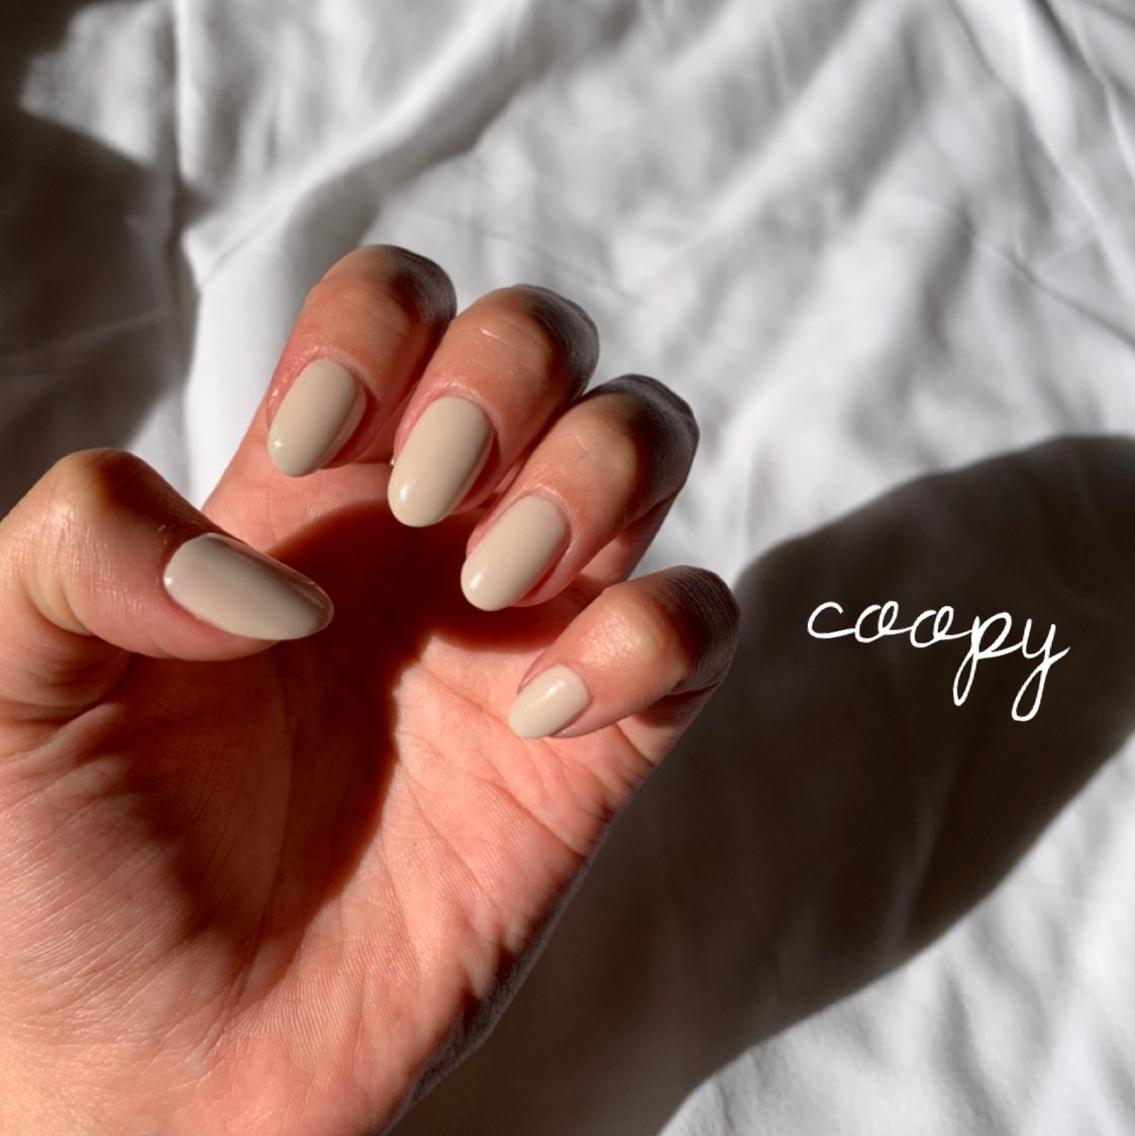 nail salon coopy所属・coopynailの掲載